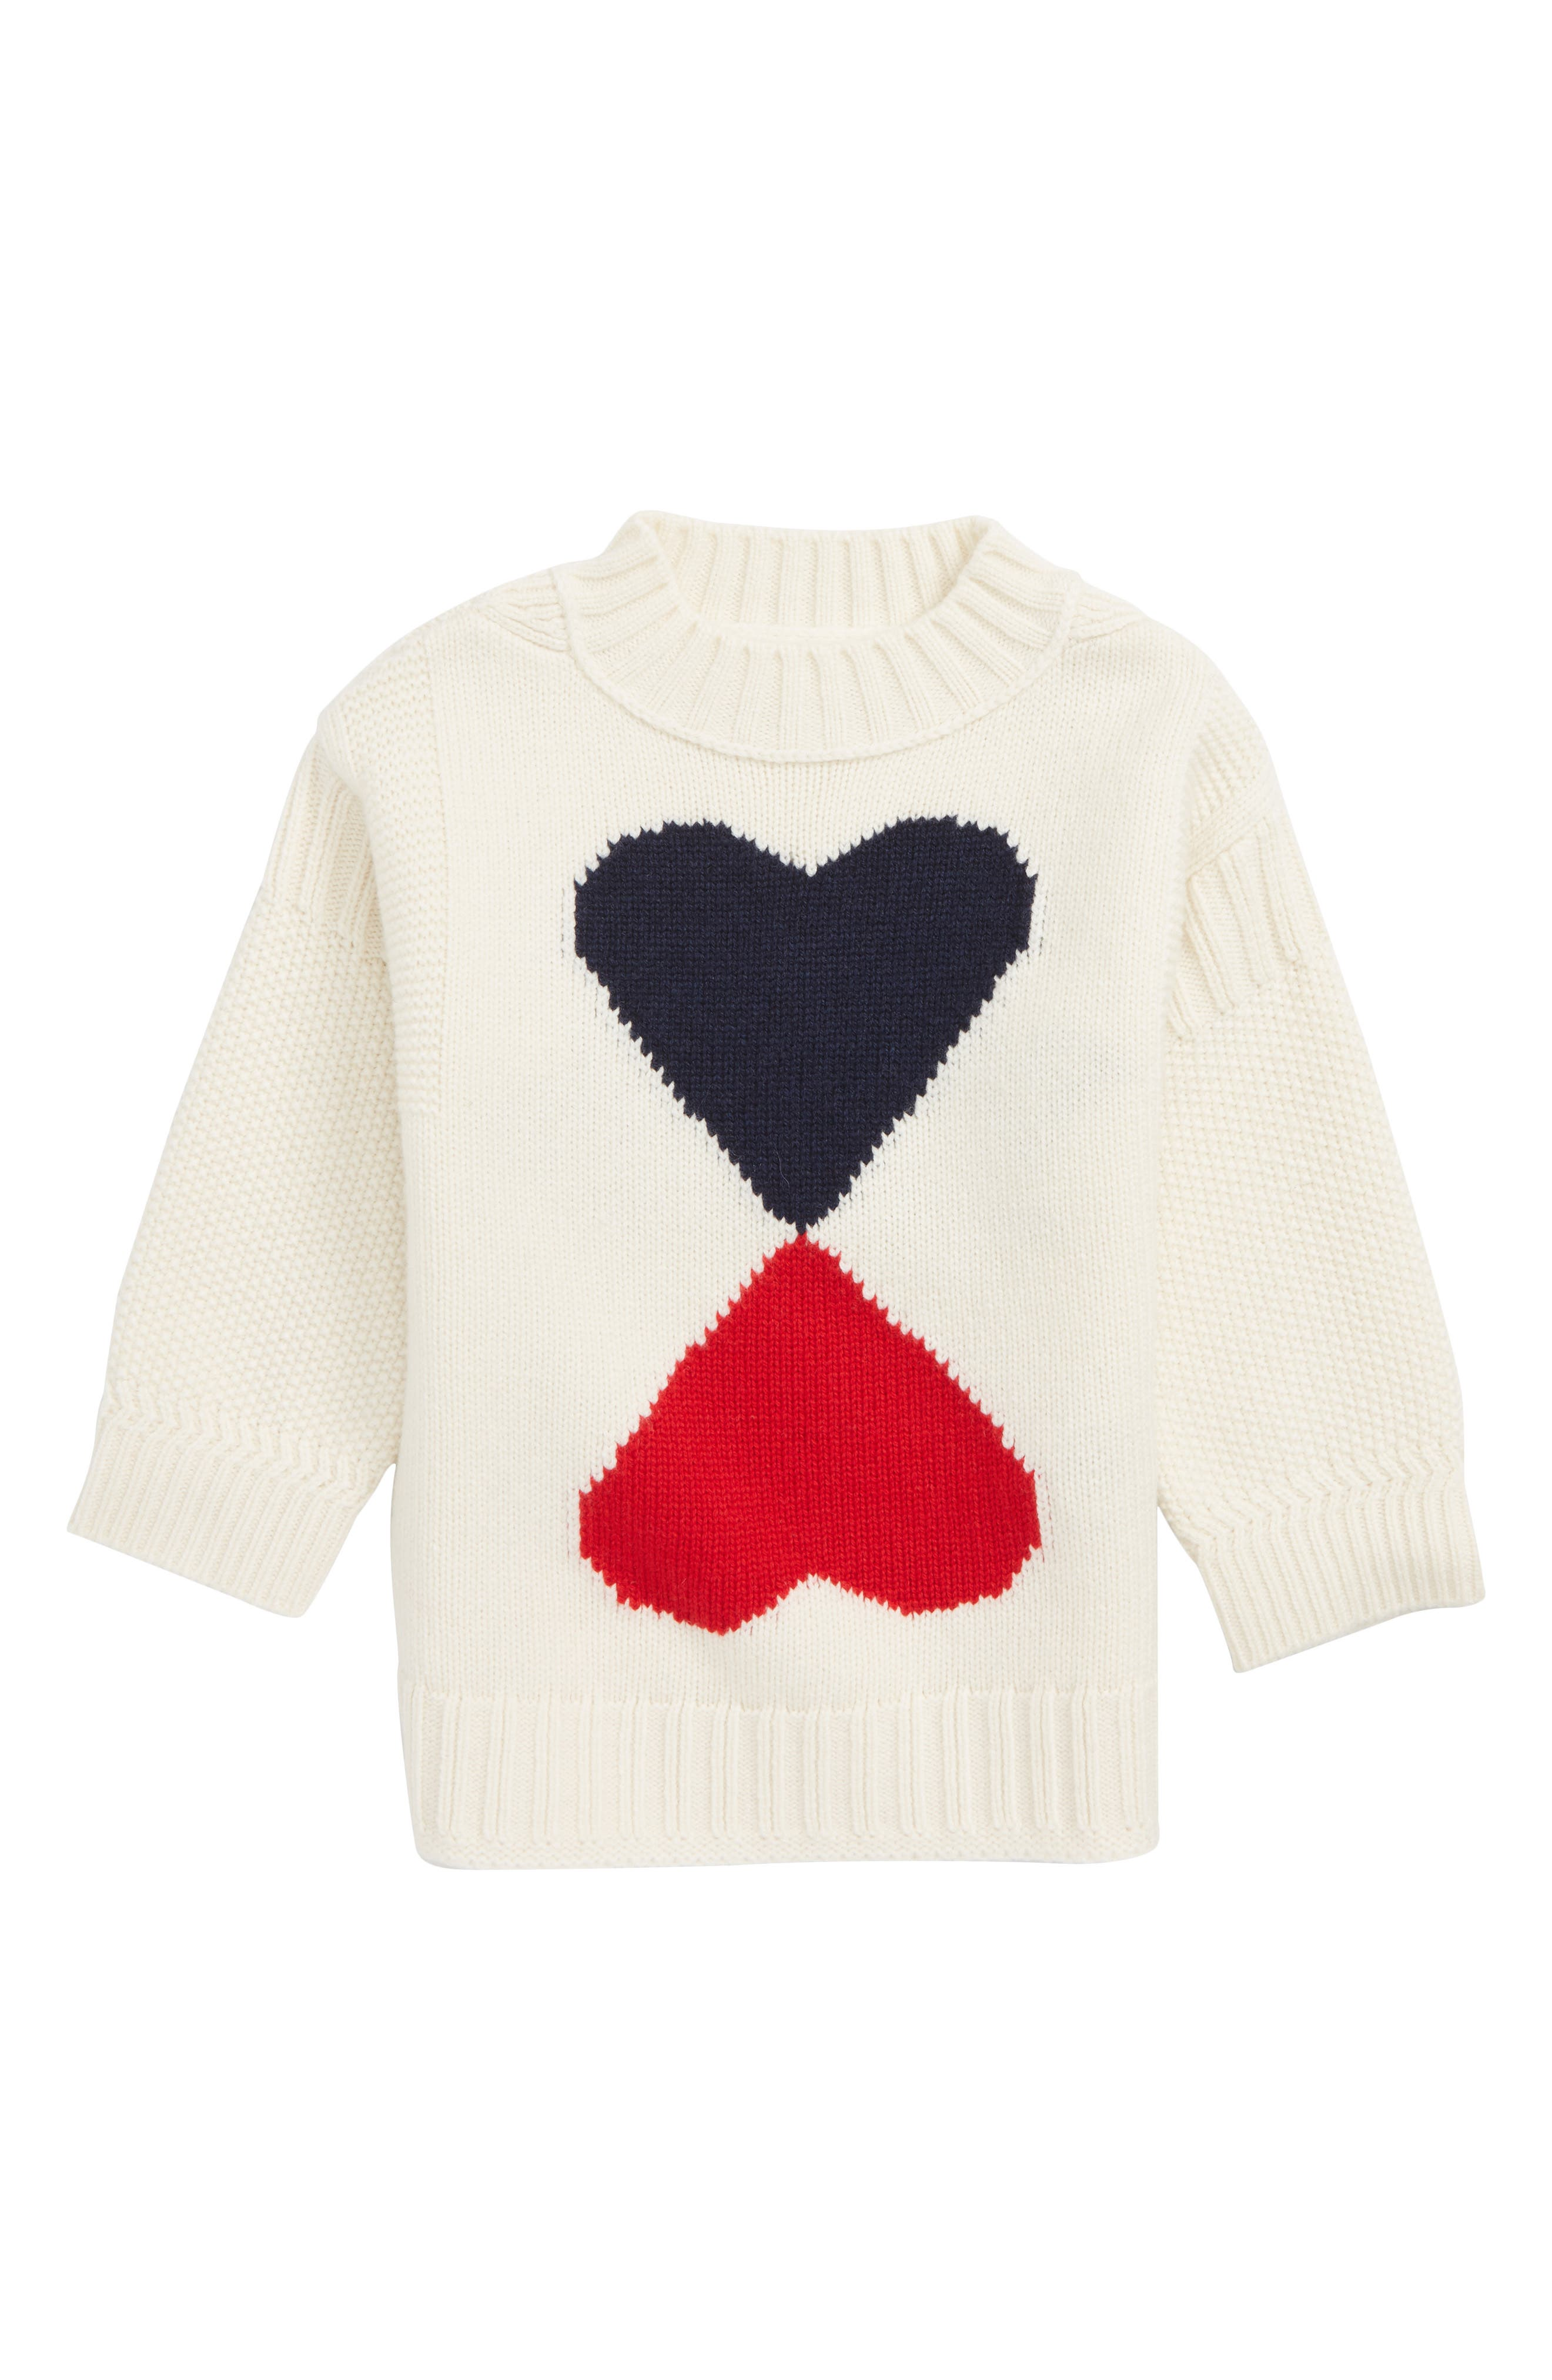 Double Heart Wool & Cashmere Sweater,                             Main thumbnail 1, color,                             IVORY